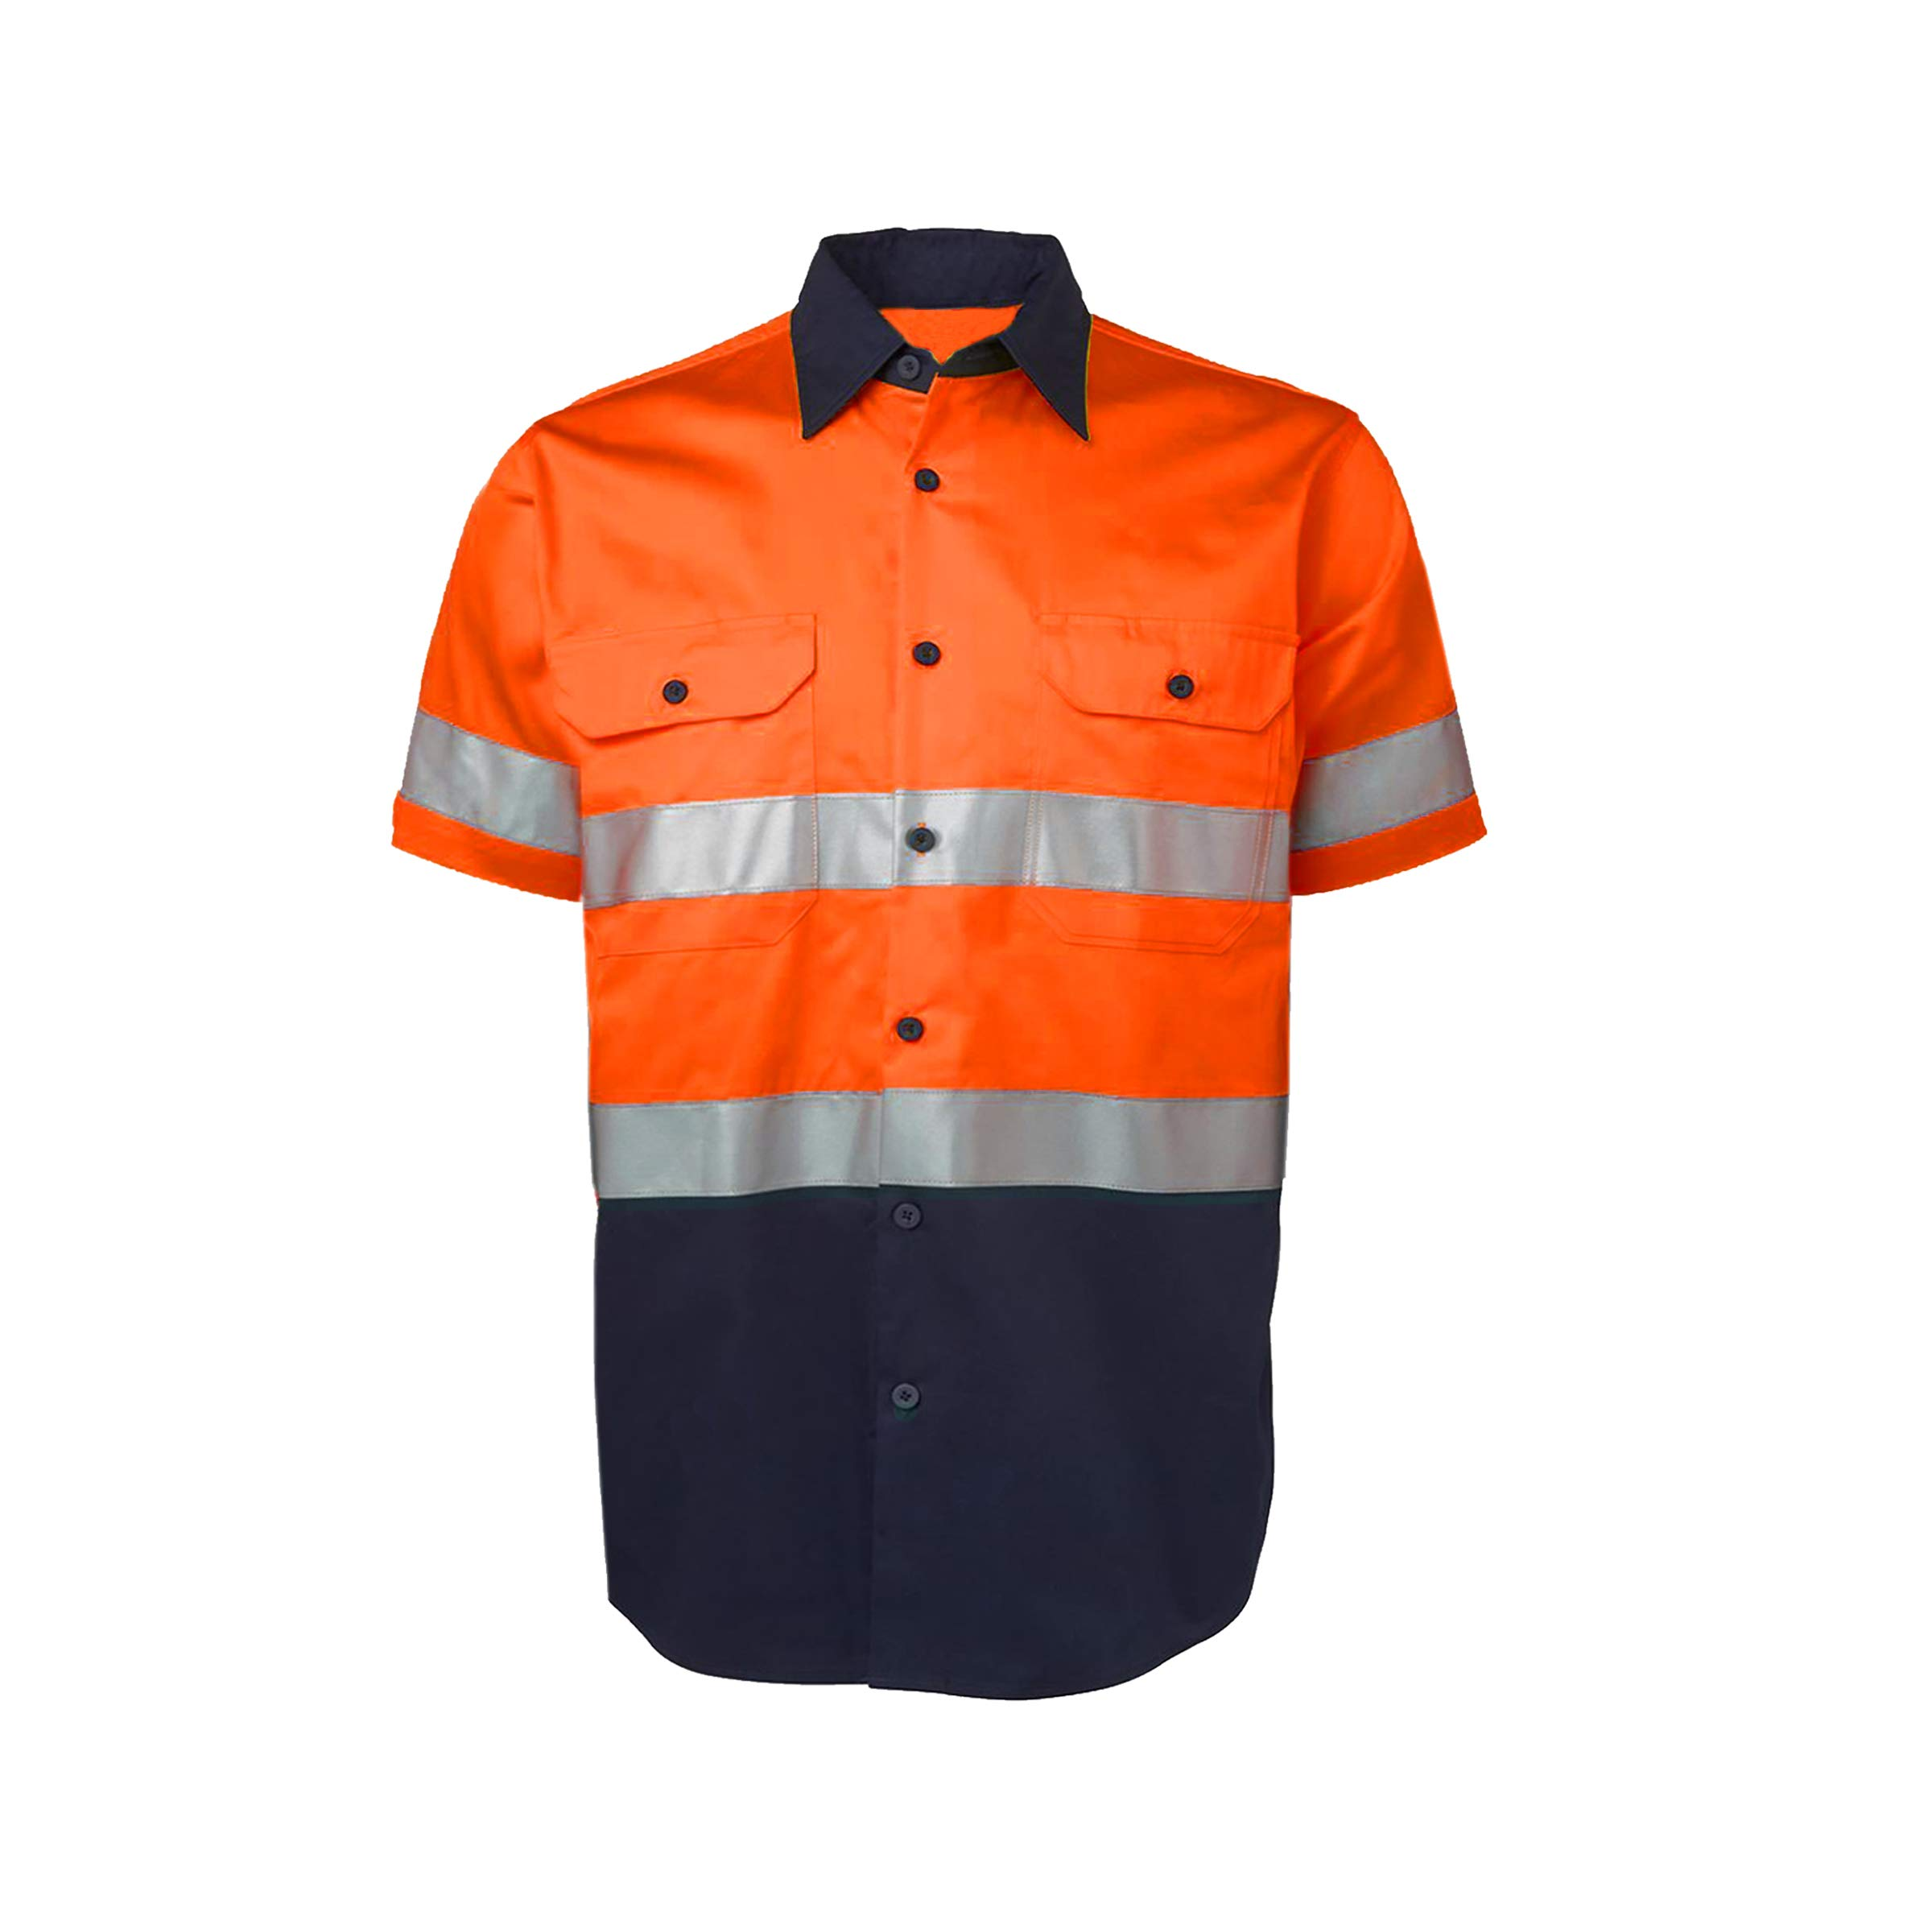 LANTERN FISH Hi Viz Security Guard Work Wear for Men Short Sleeve 155gsm pre-Shrunk Cotton Drill Bright Orange/Navy Large Size